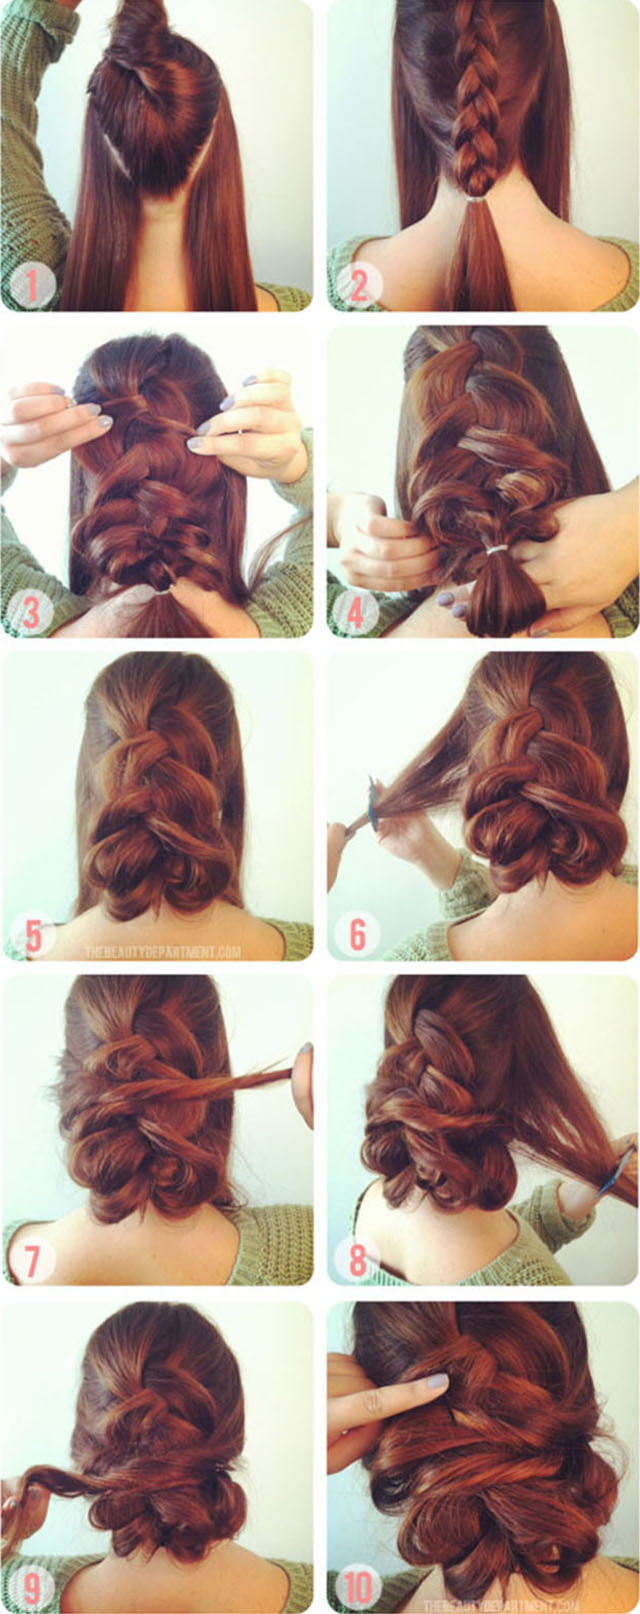 Awe Inspiring 16 Super Easy Hairstyles To Make On Your Own Hairstyle Inspiration Daily Dogsangcom